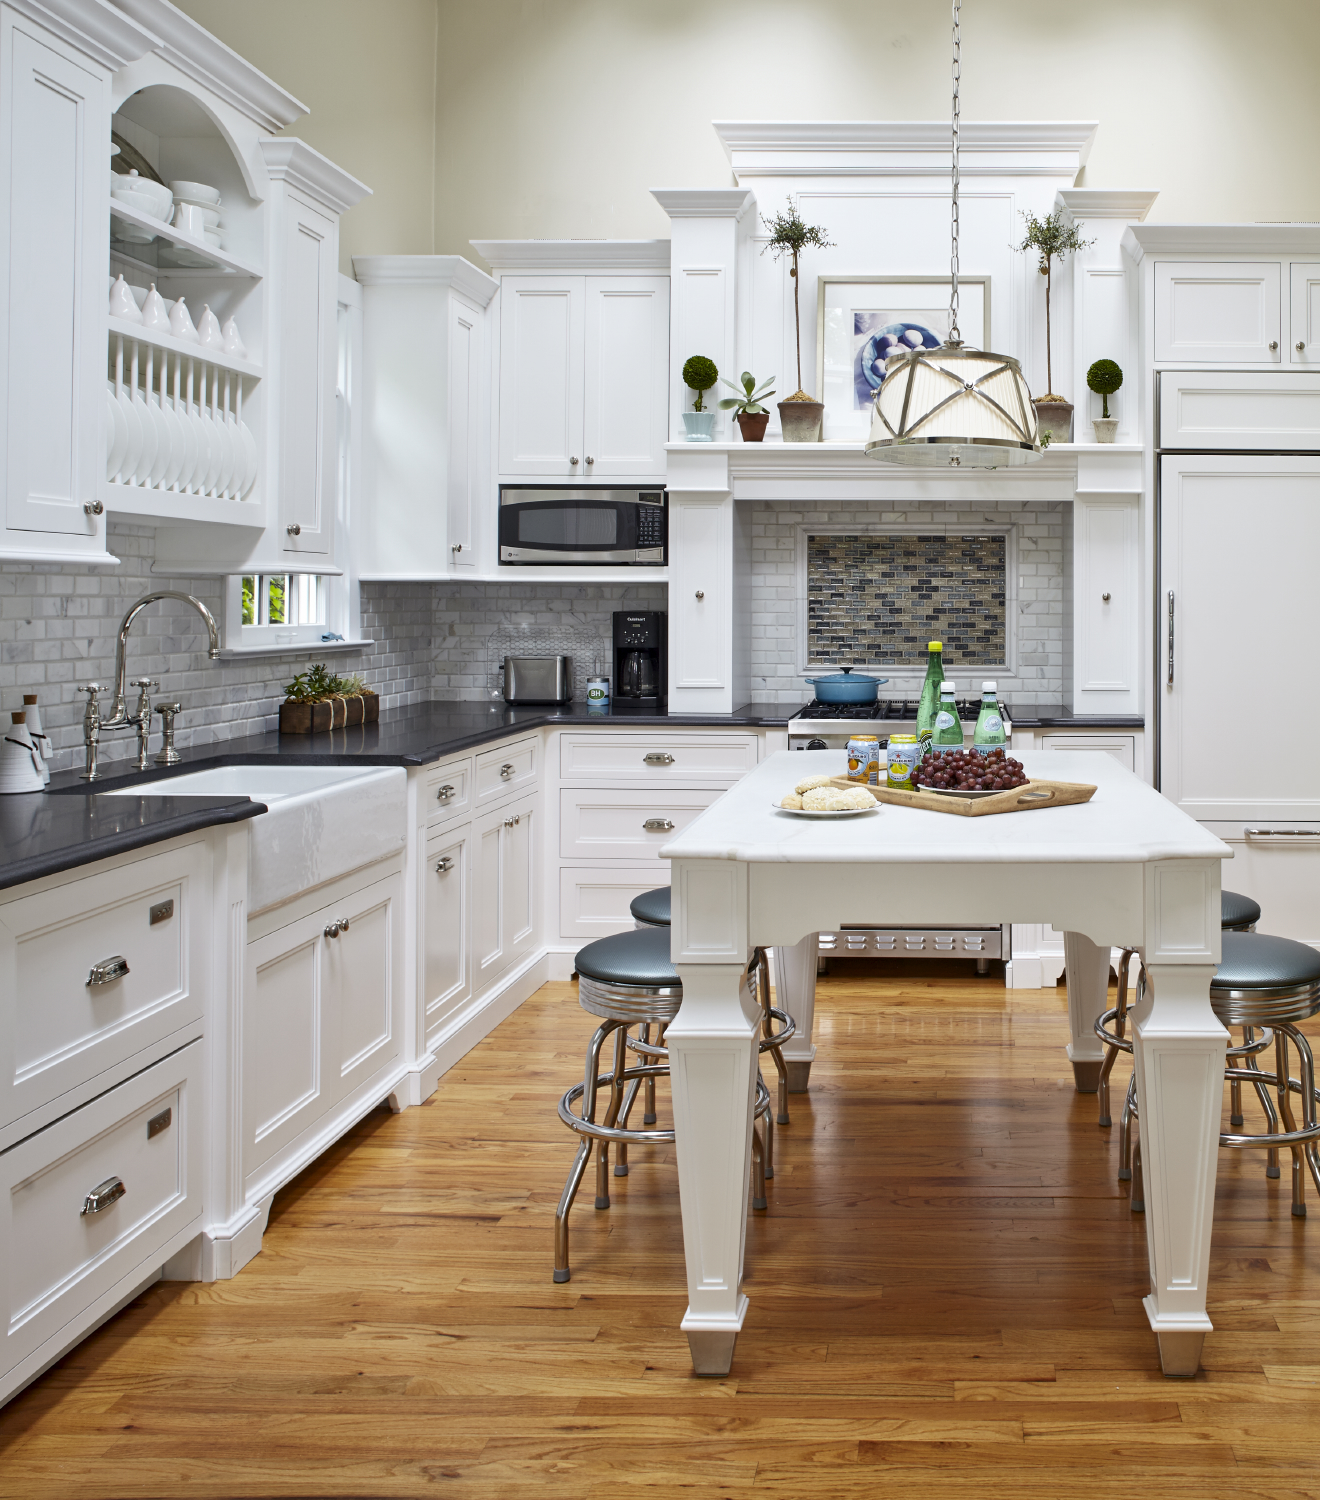 Few Tips For Selecting The Right Kitchen Cabinets | My ...